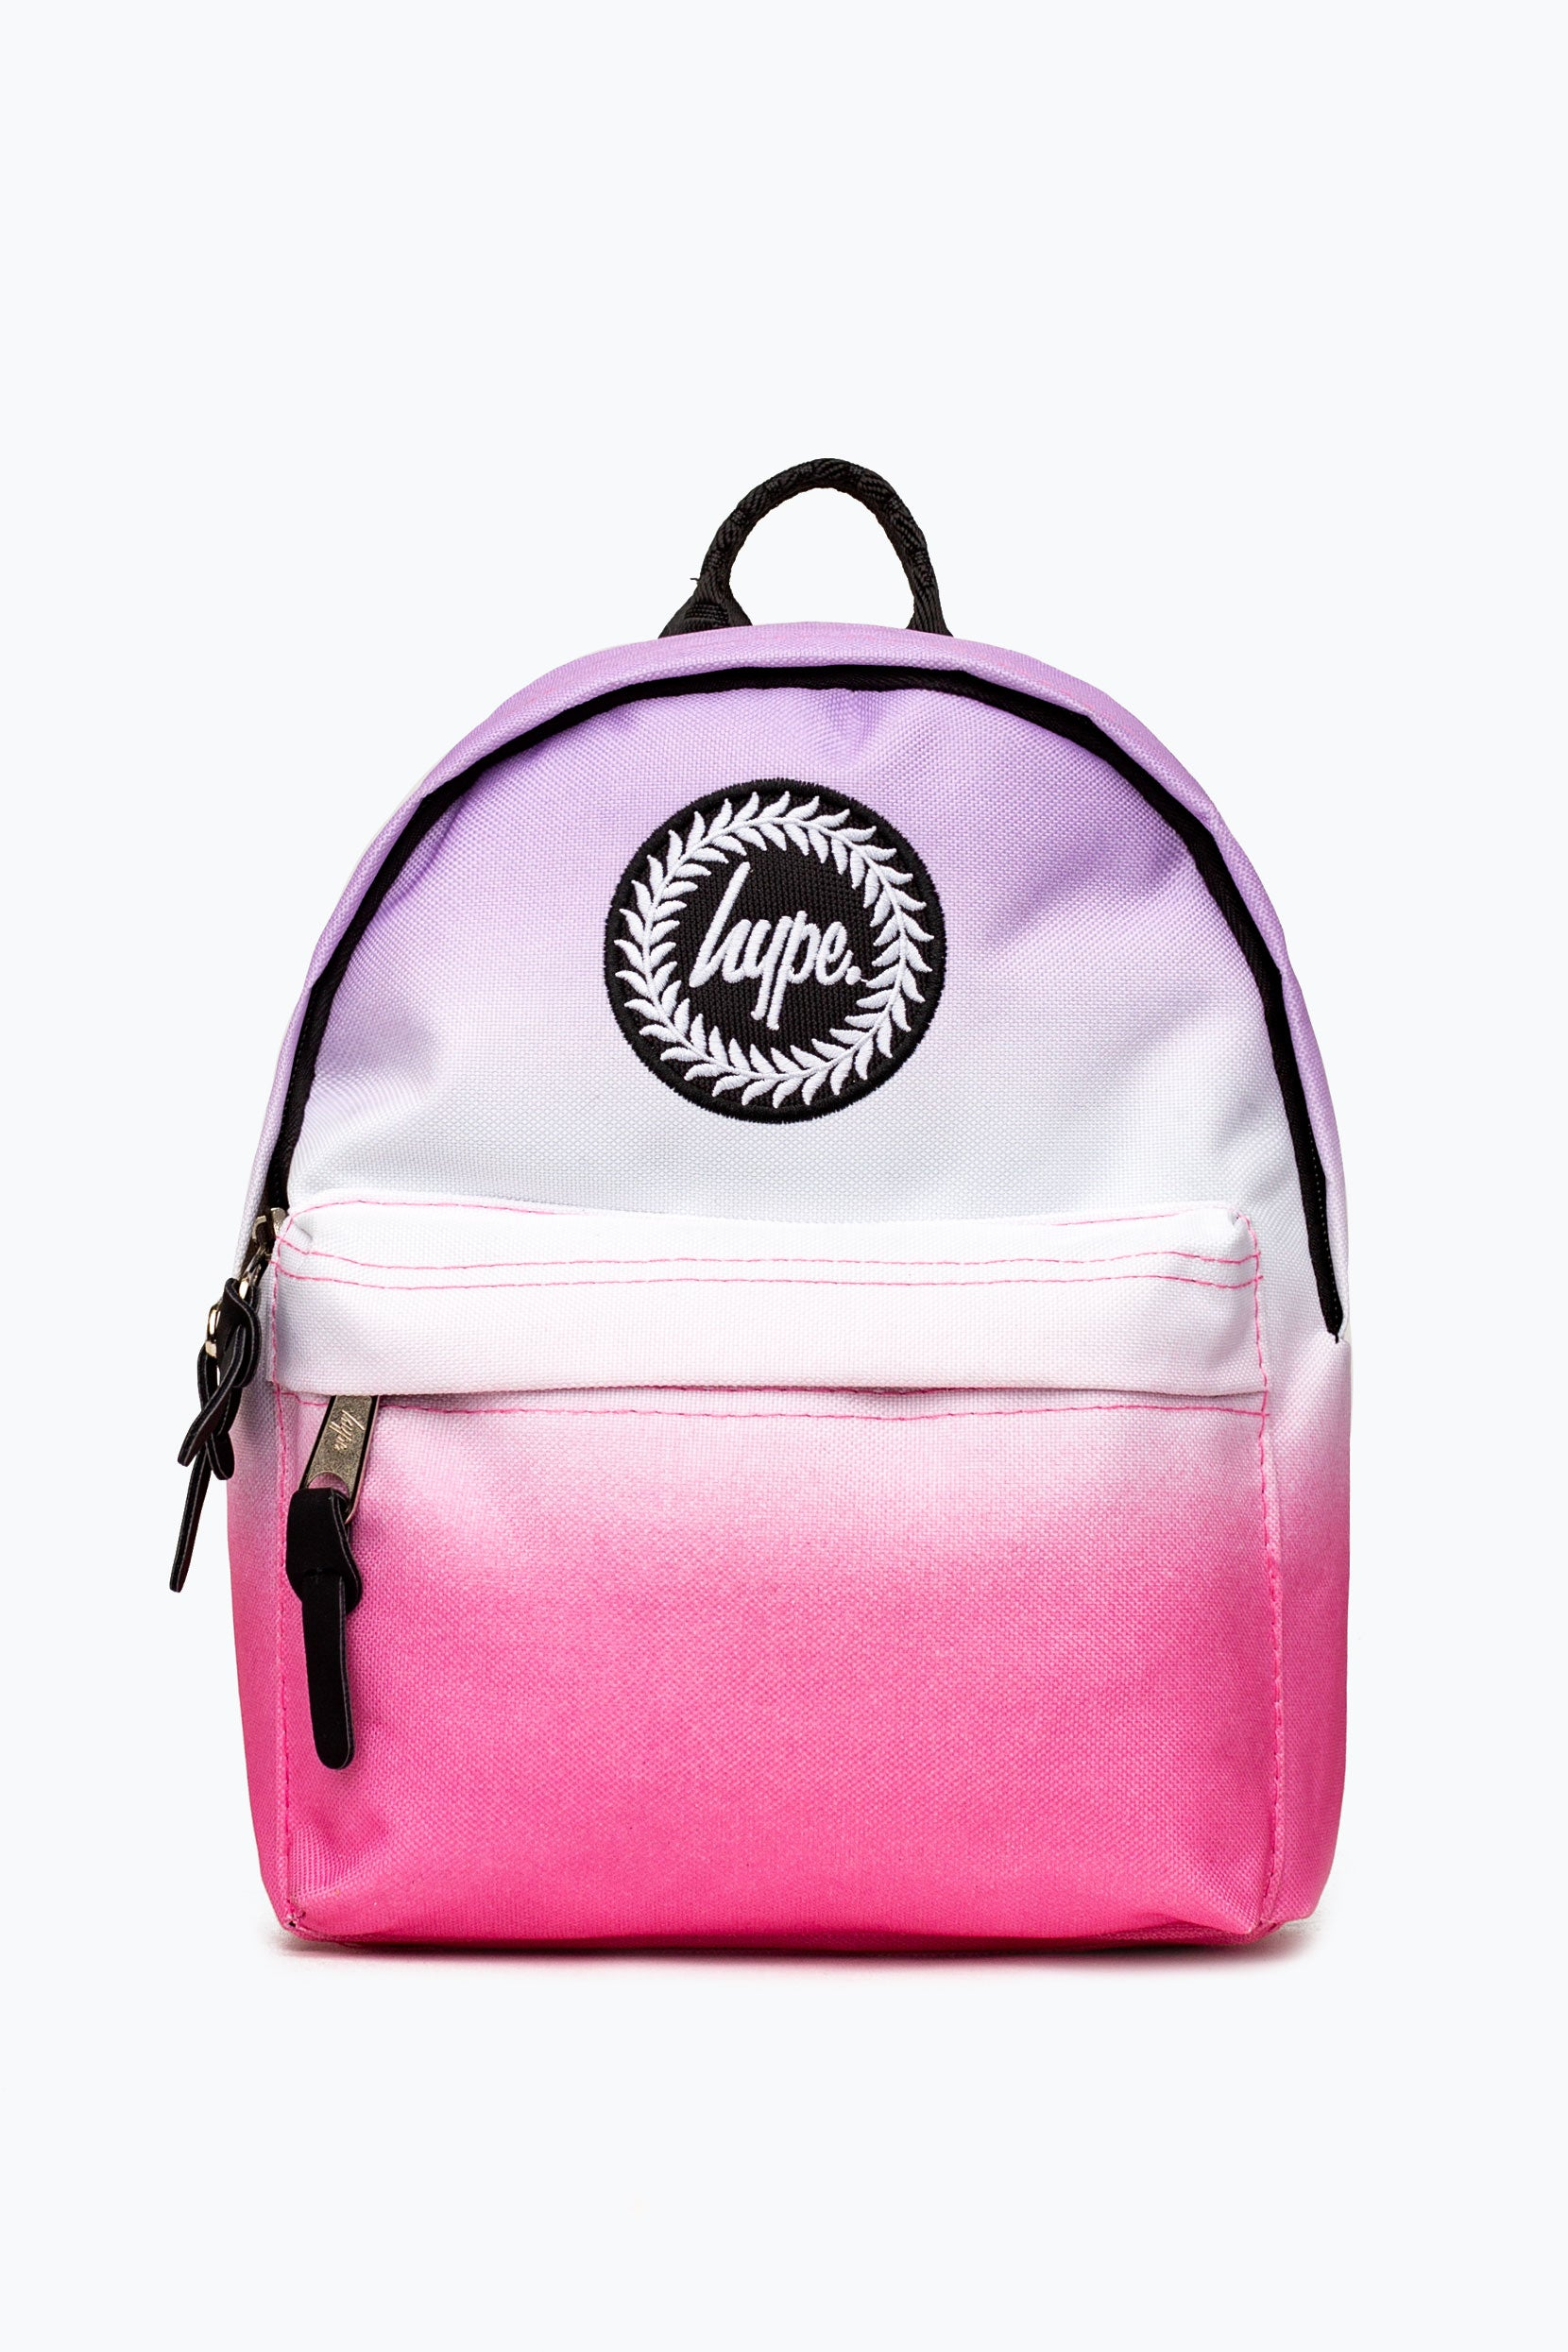 HYPE PINK CLUB SPECKLE MINI BACKPACK – JustHype ltd 18f676b15d434